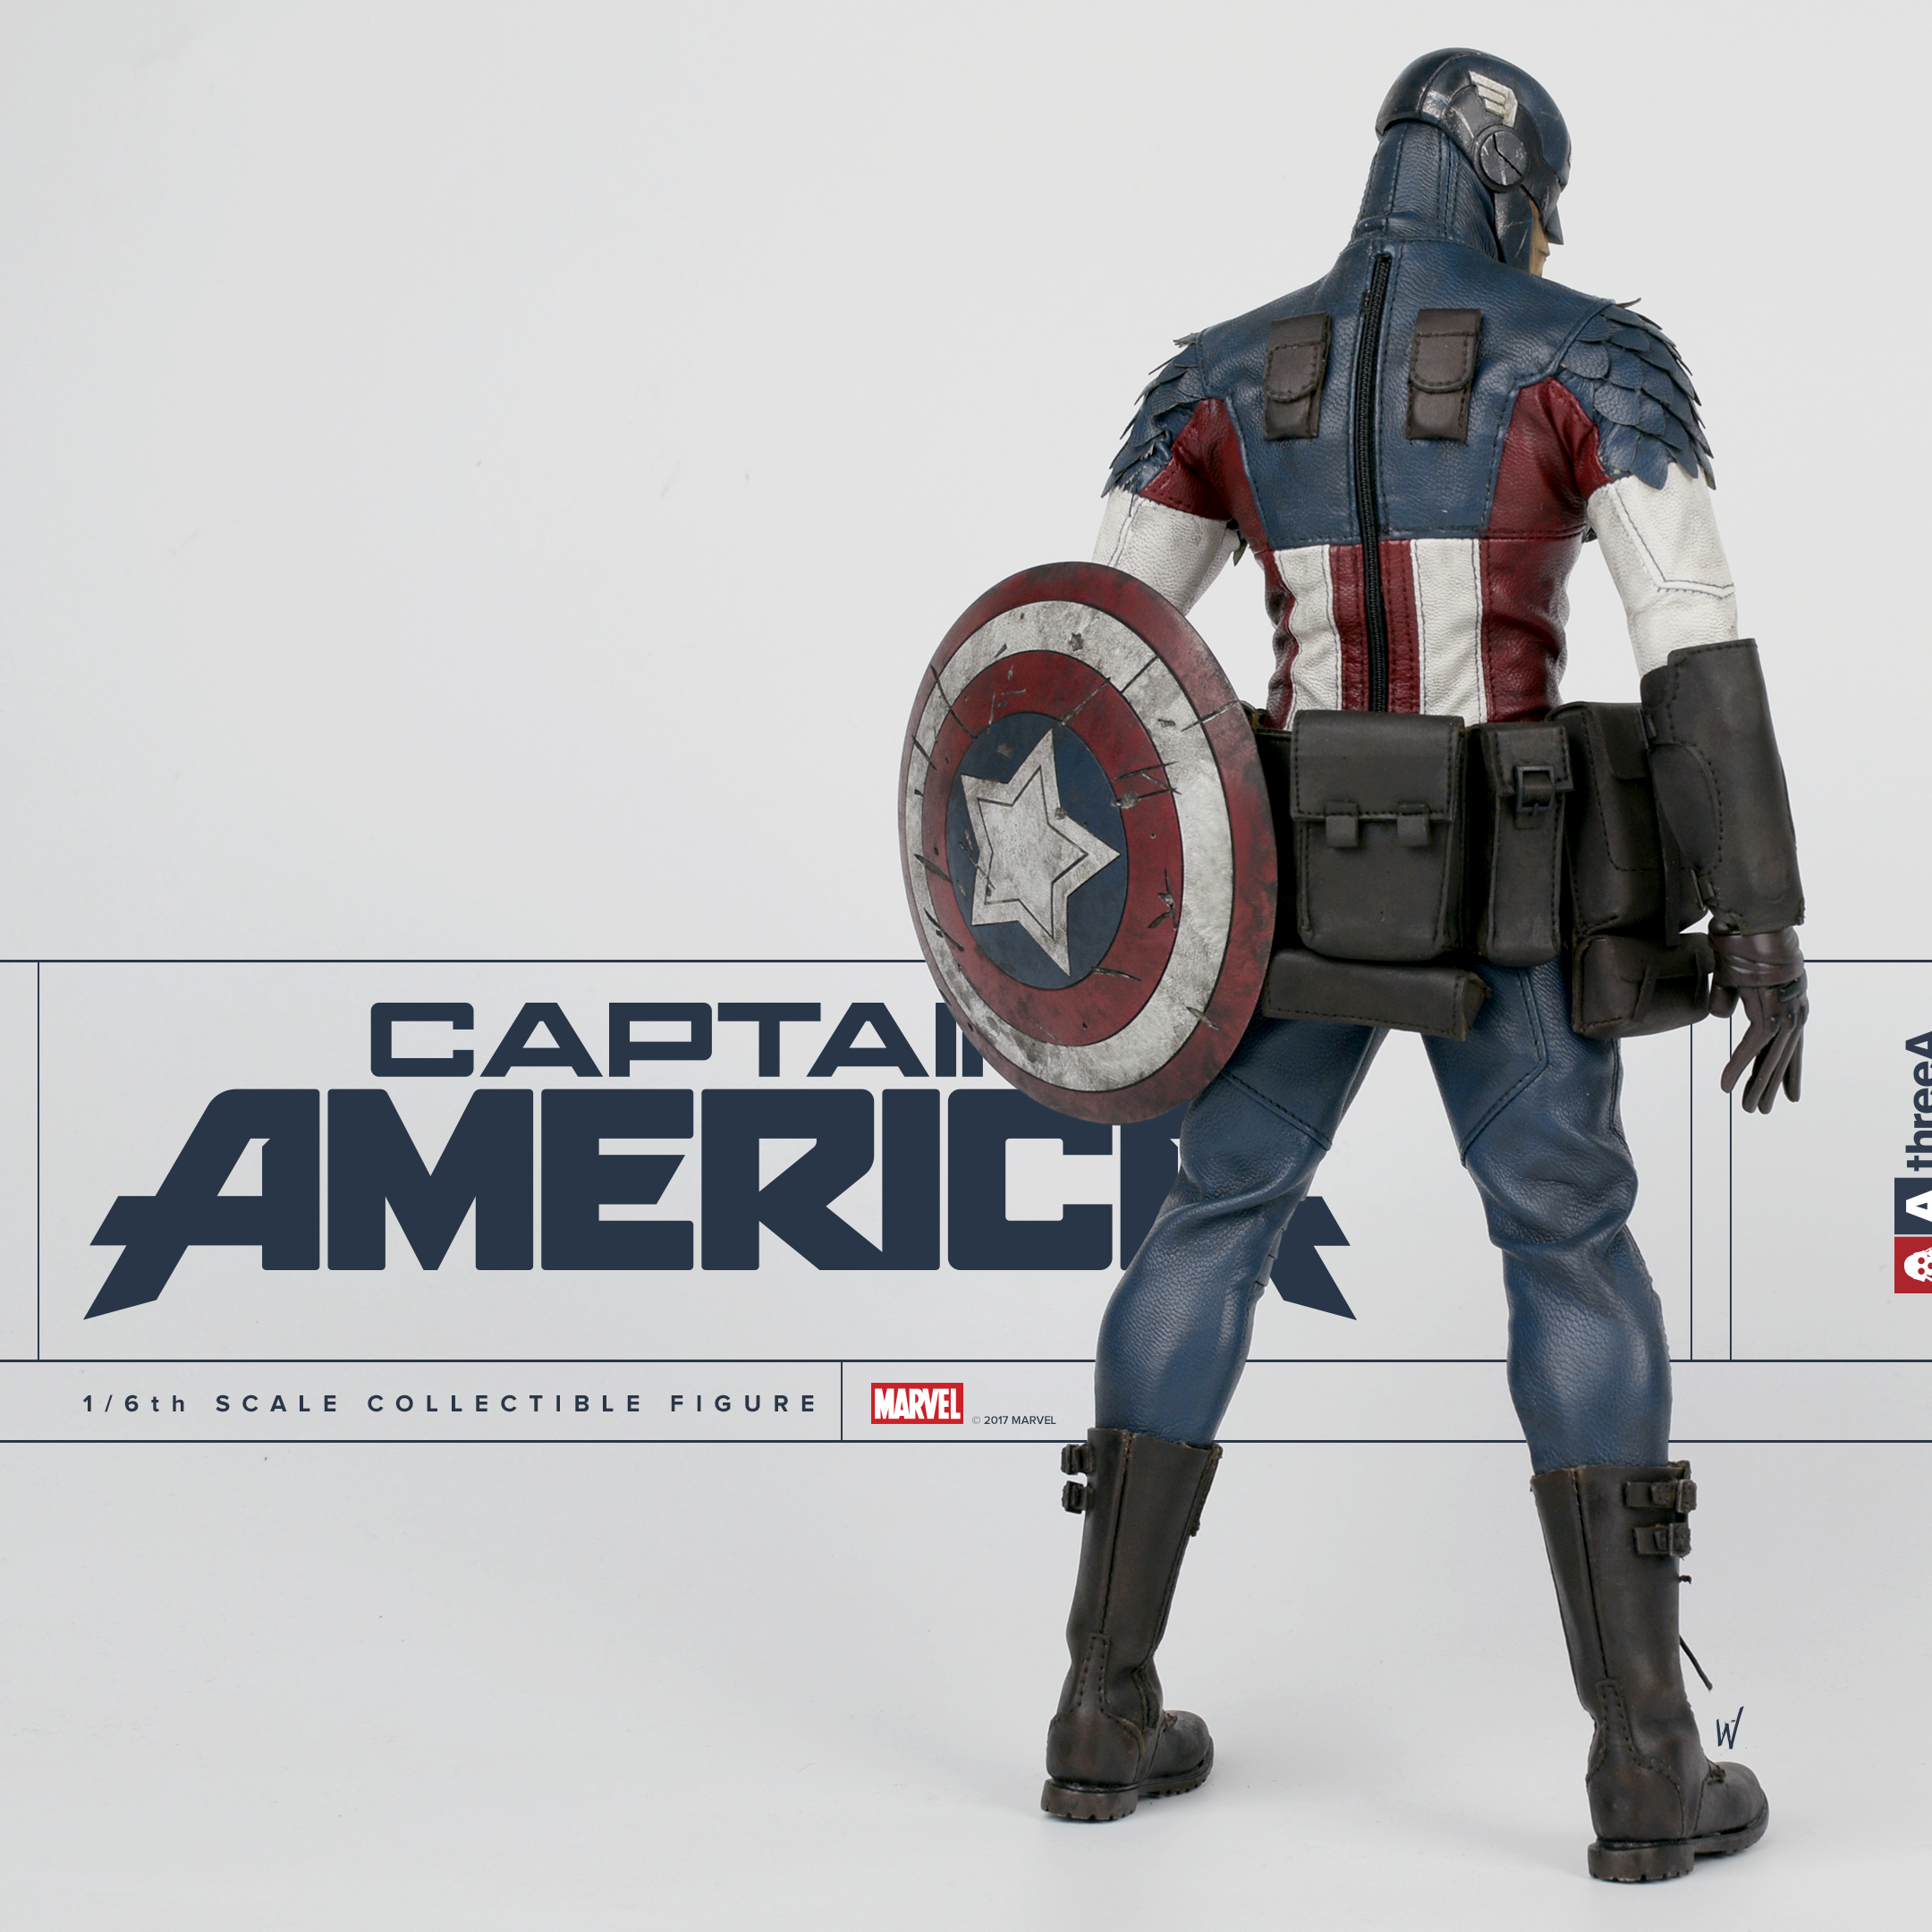 3A_Marvel_CaptainAmerica_Square_Ad_003b.png